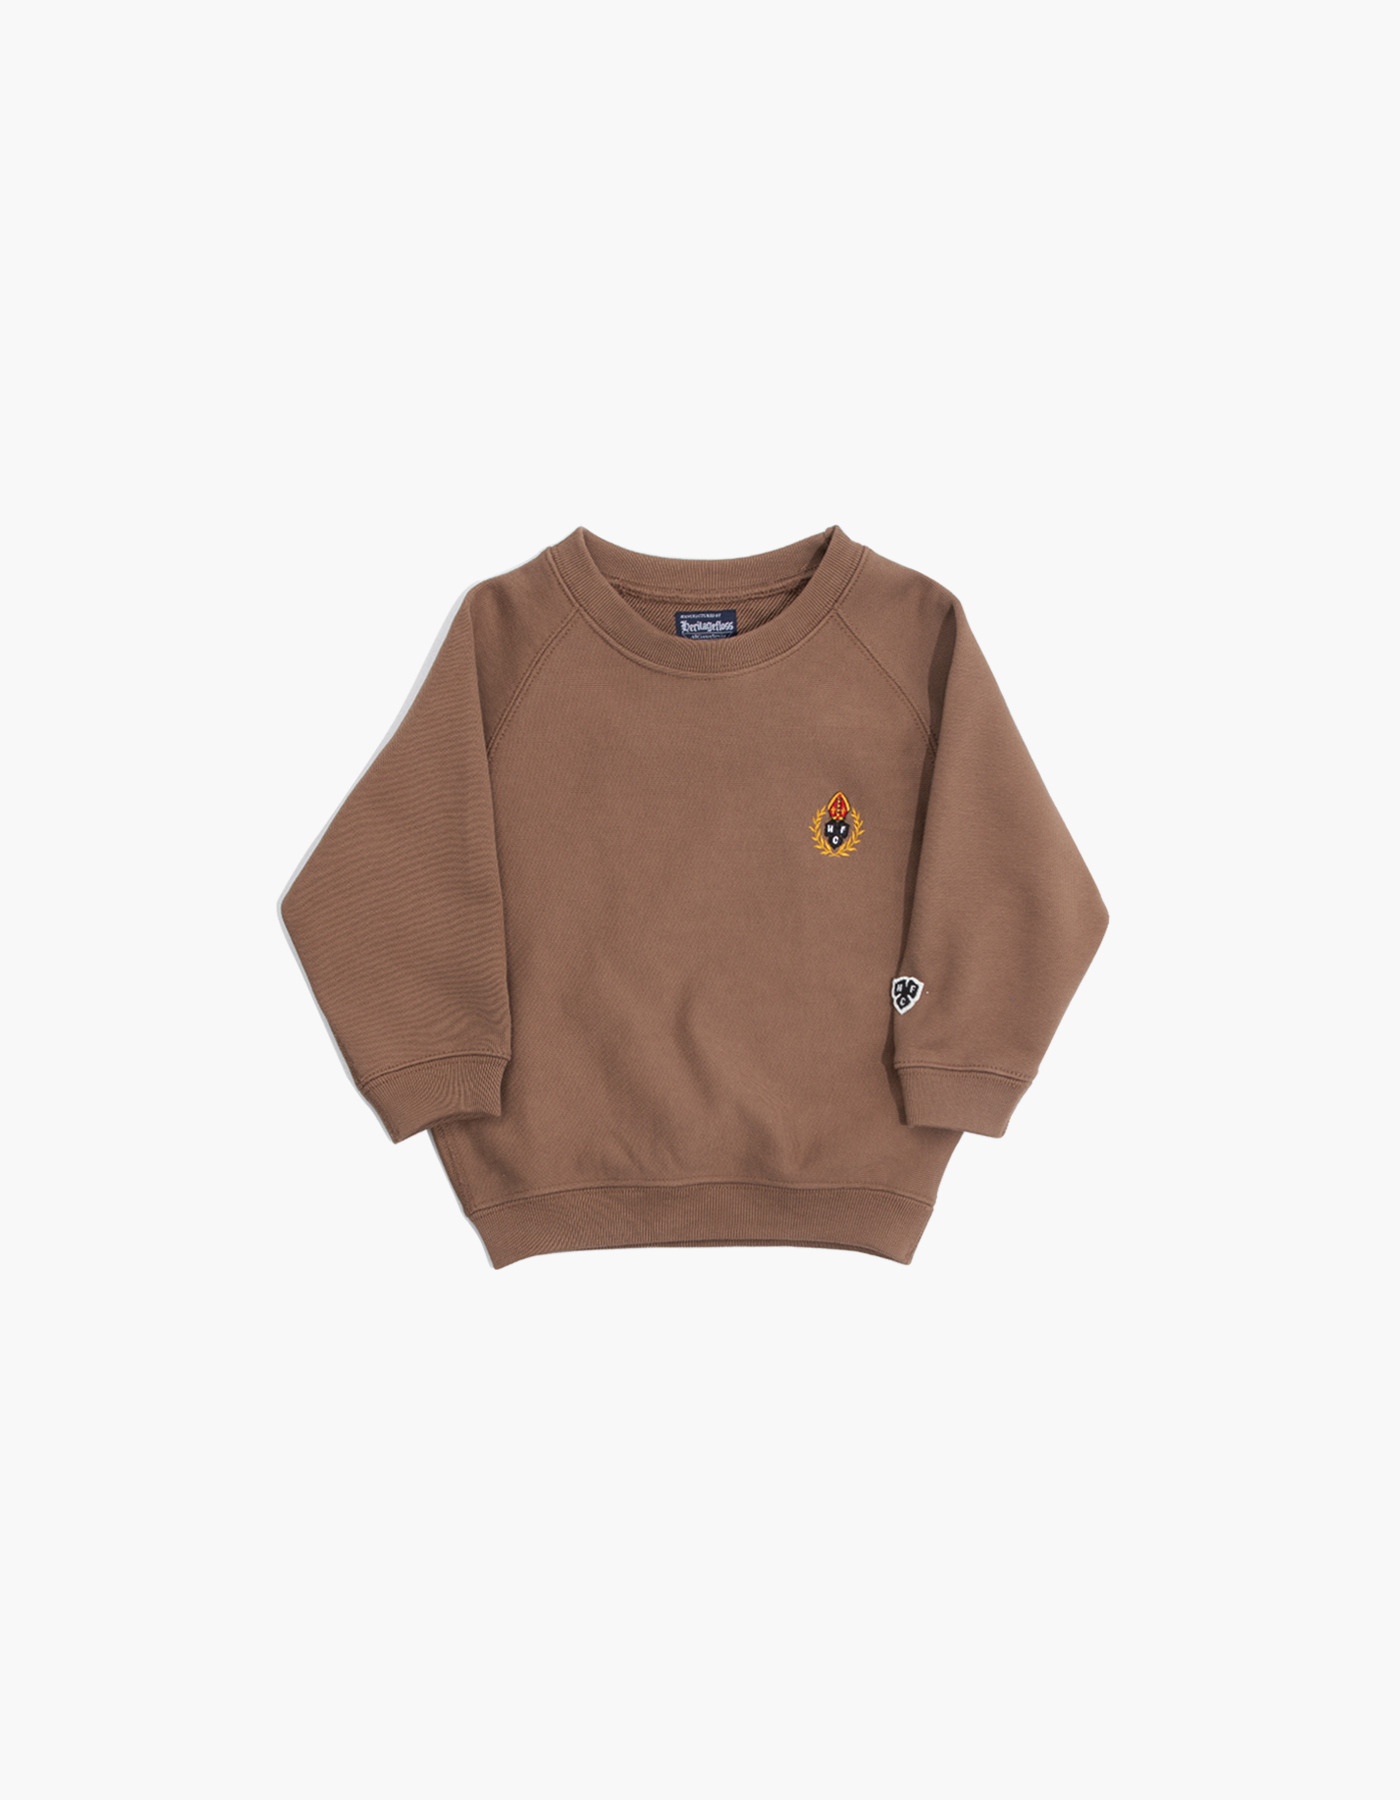 231 KIDS HFC CREWNECK / BROWN